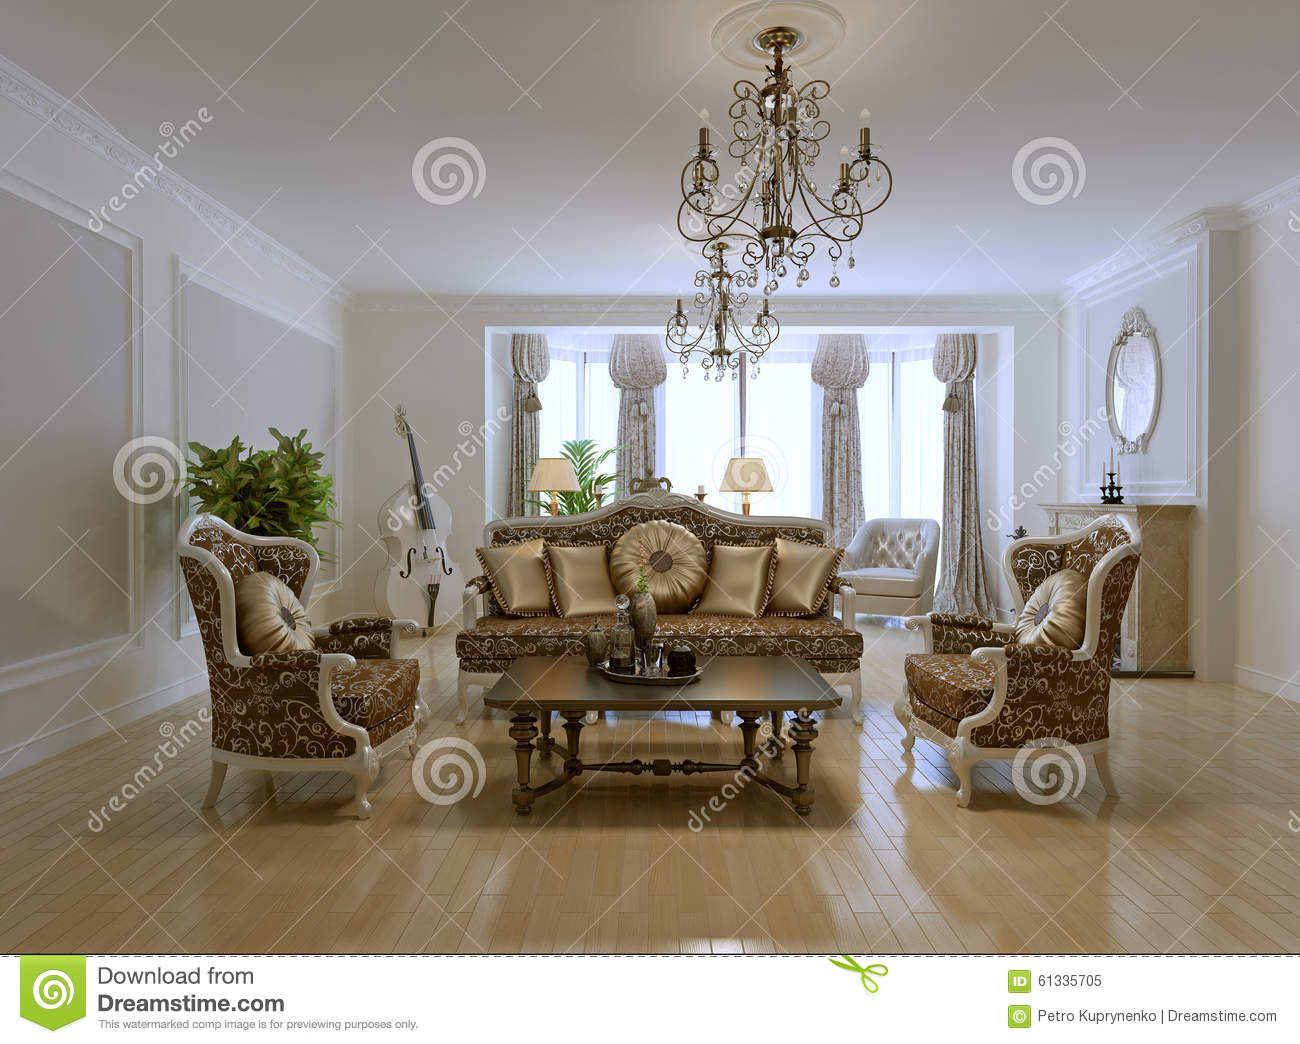 Conception de salon riche illustration stock   image: 61335705